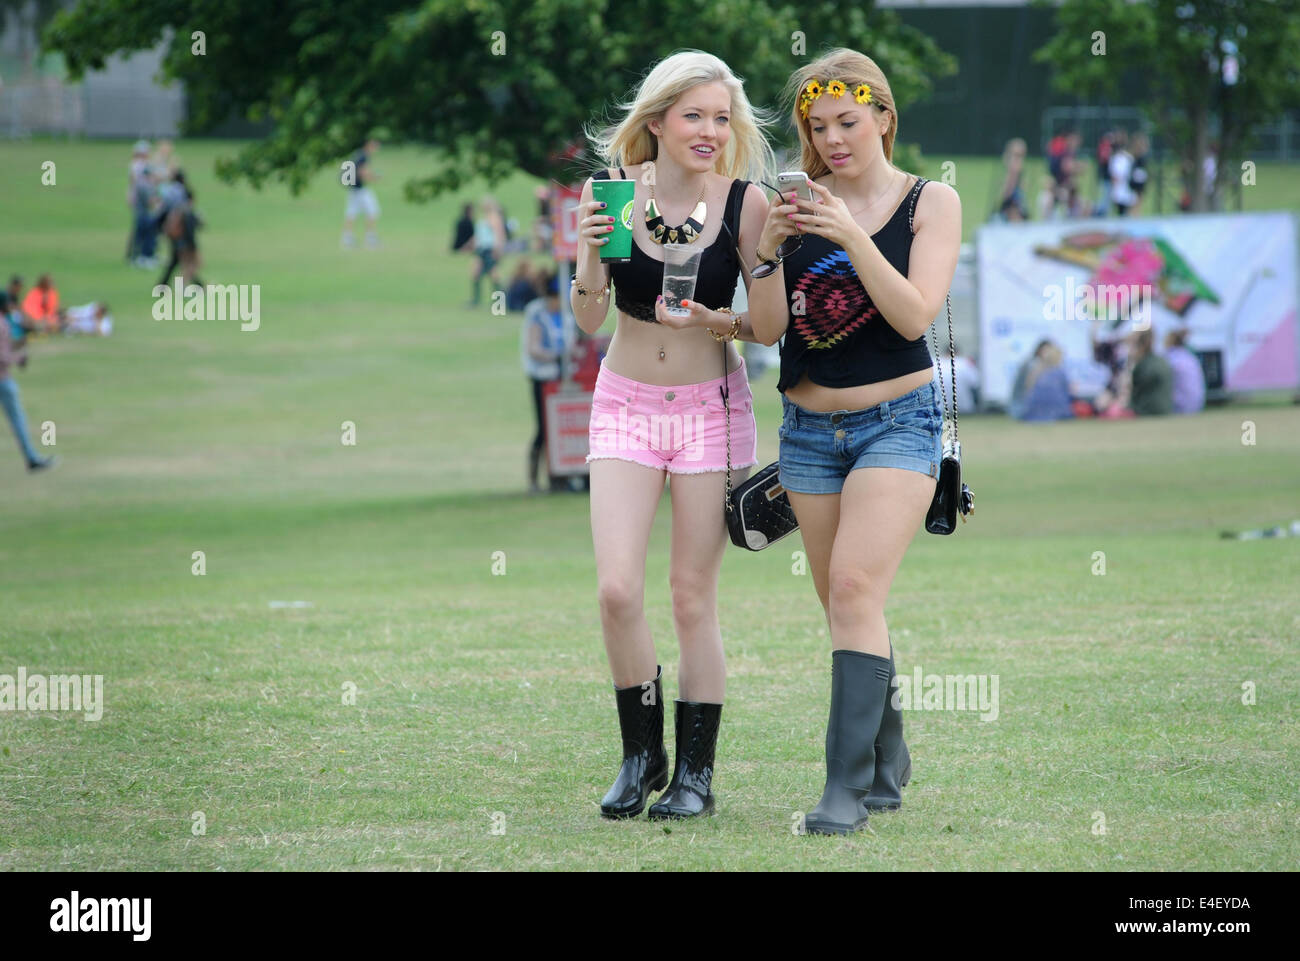 Young girls  YOUNG GIRLS ENJOYING SOCIAL MEDIA AT A OUTDOOR MUSIC FESTIVAL RE SUMMER  FESTIVALS MOBILE PHONES TEENAGERS SOCIAL EVENTS UK